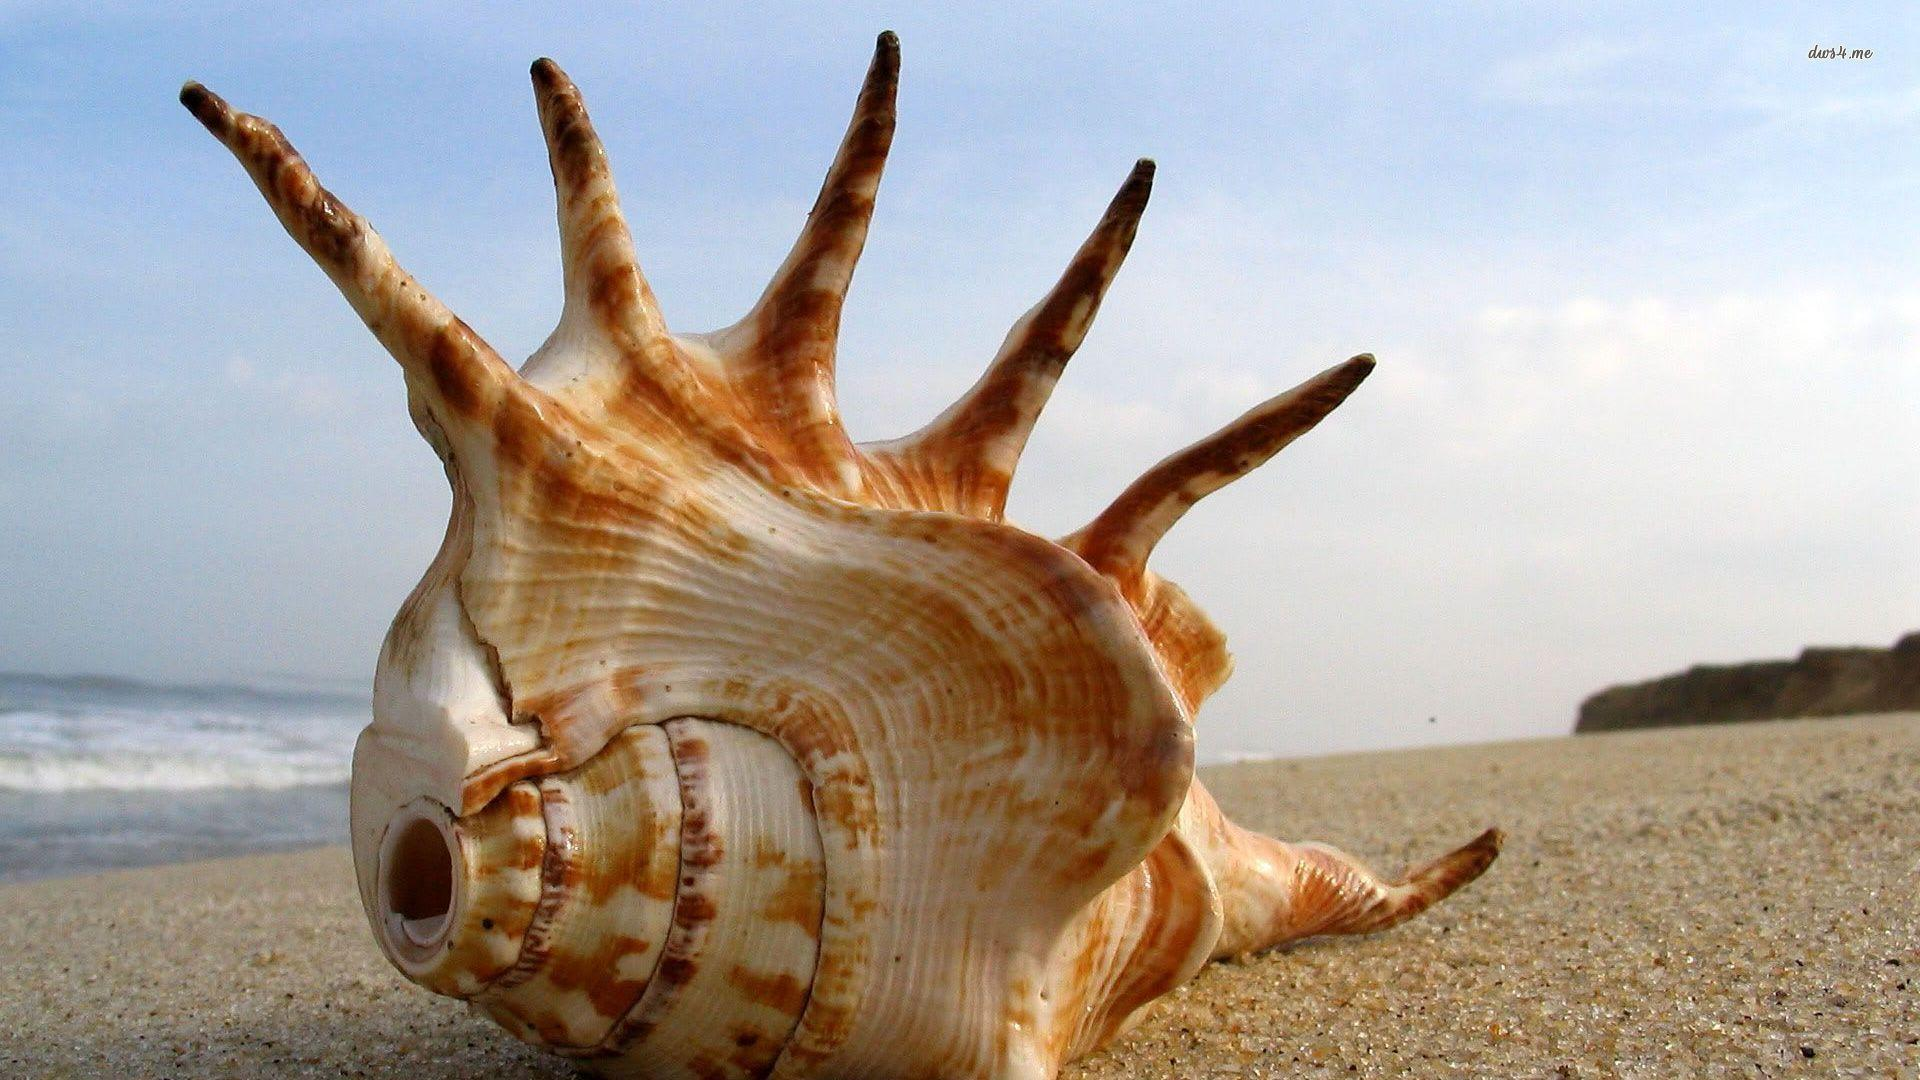 Geography Hd Wallpaper Seashell Wallpapers Wallpaper Cave